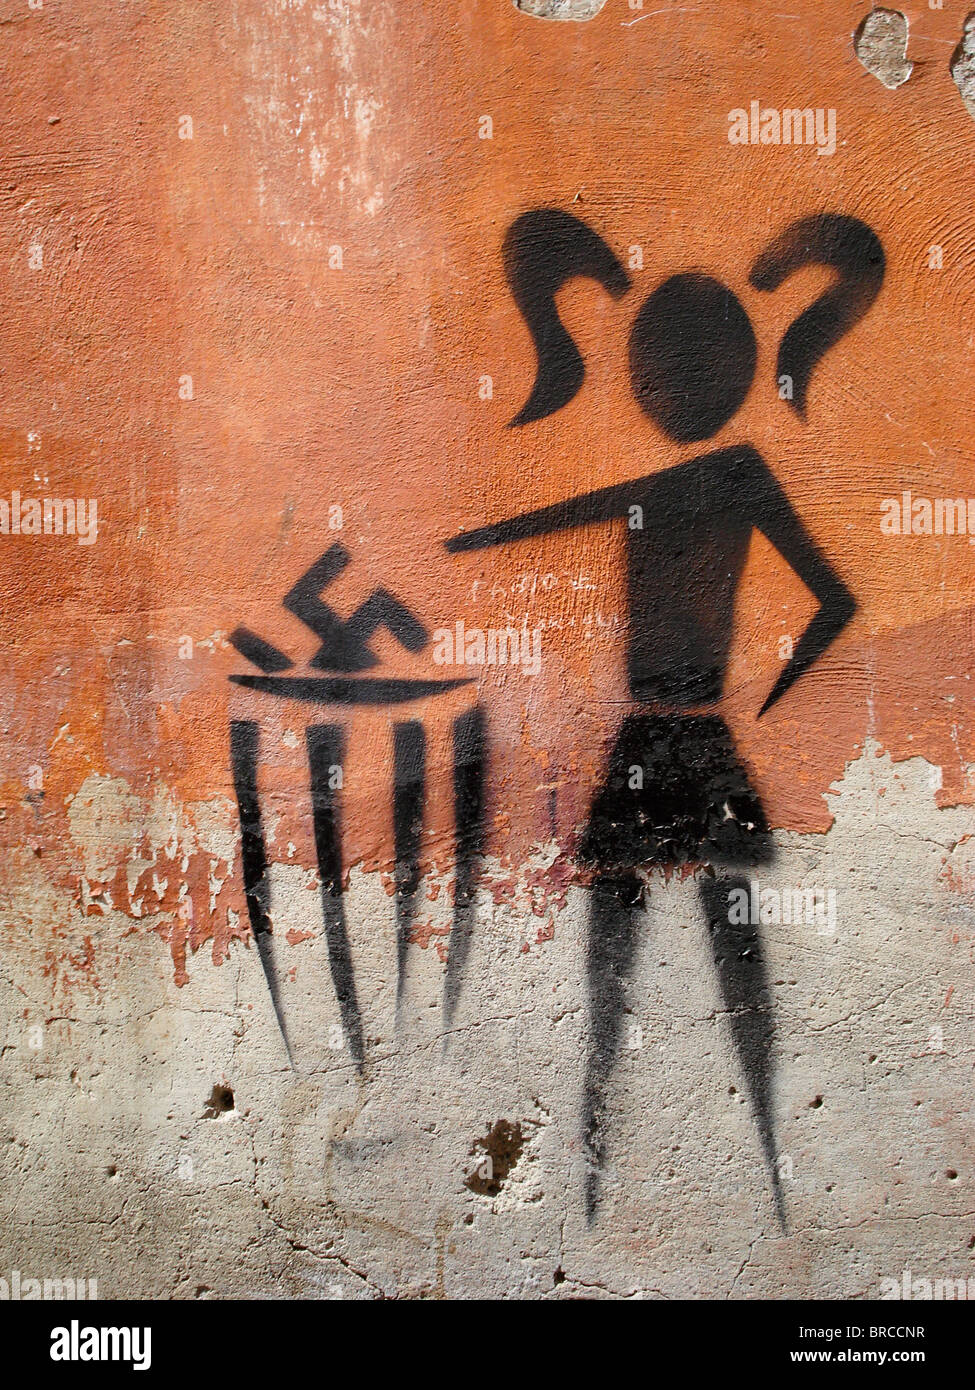 Anti Nazi graffiti on a wall in Rome, Italy - picture depicts girl throwing swastika into a bin. Stock Photo